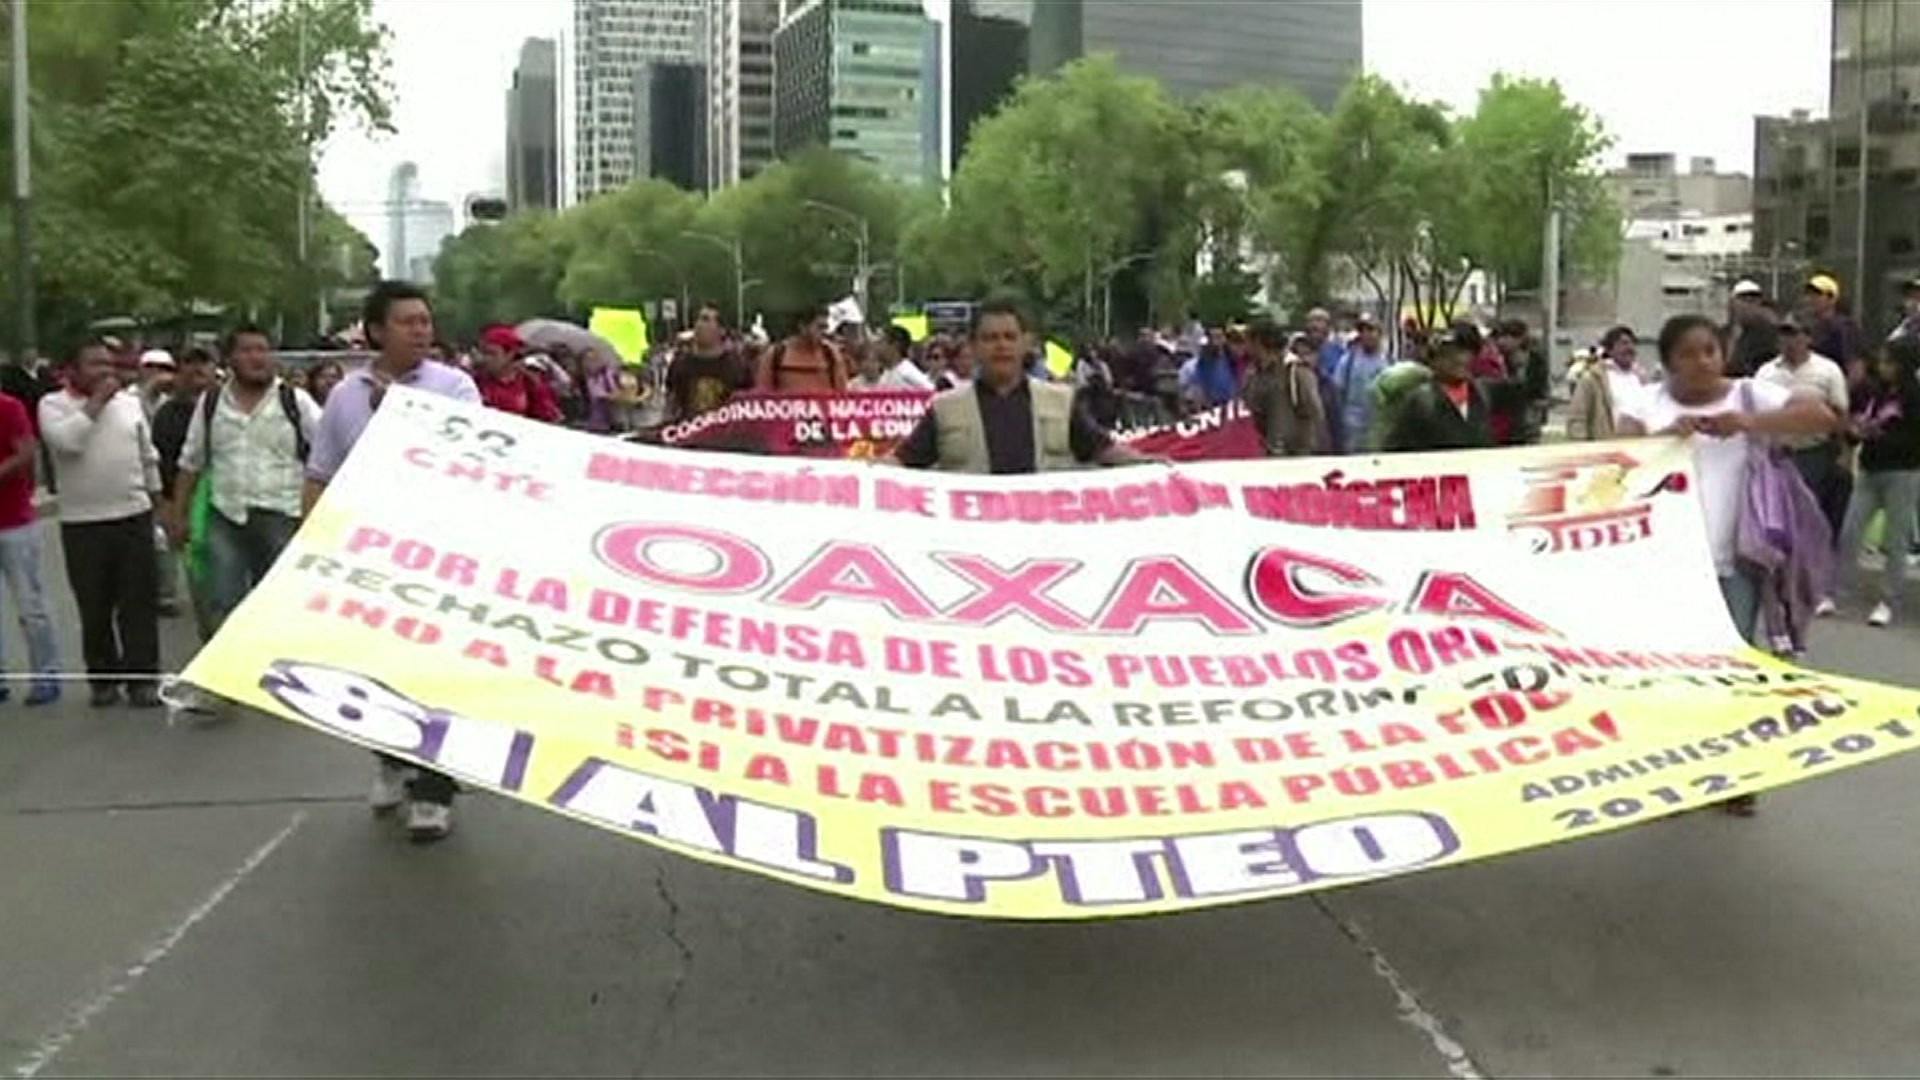 Protesters in Mexico City march with a banner opposing education reforms.